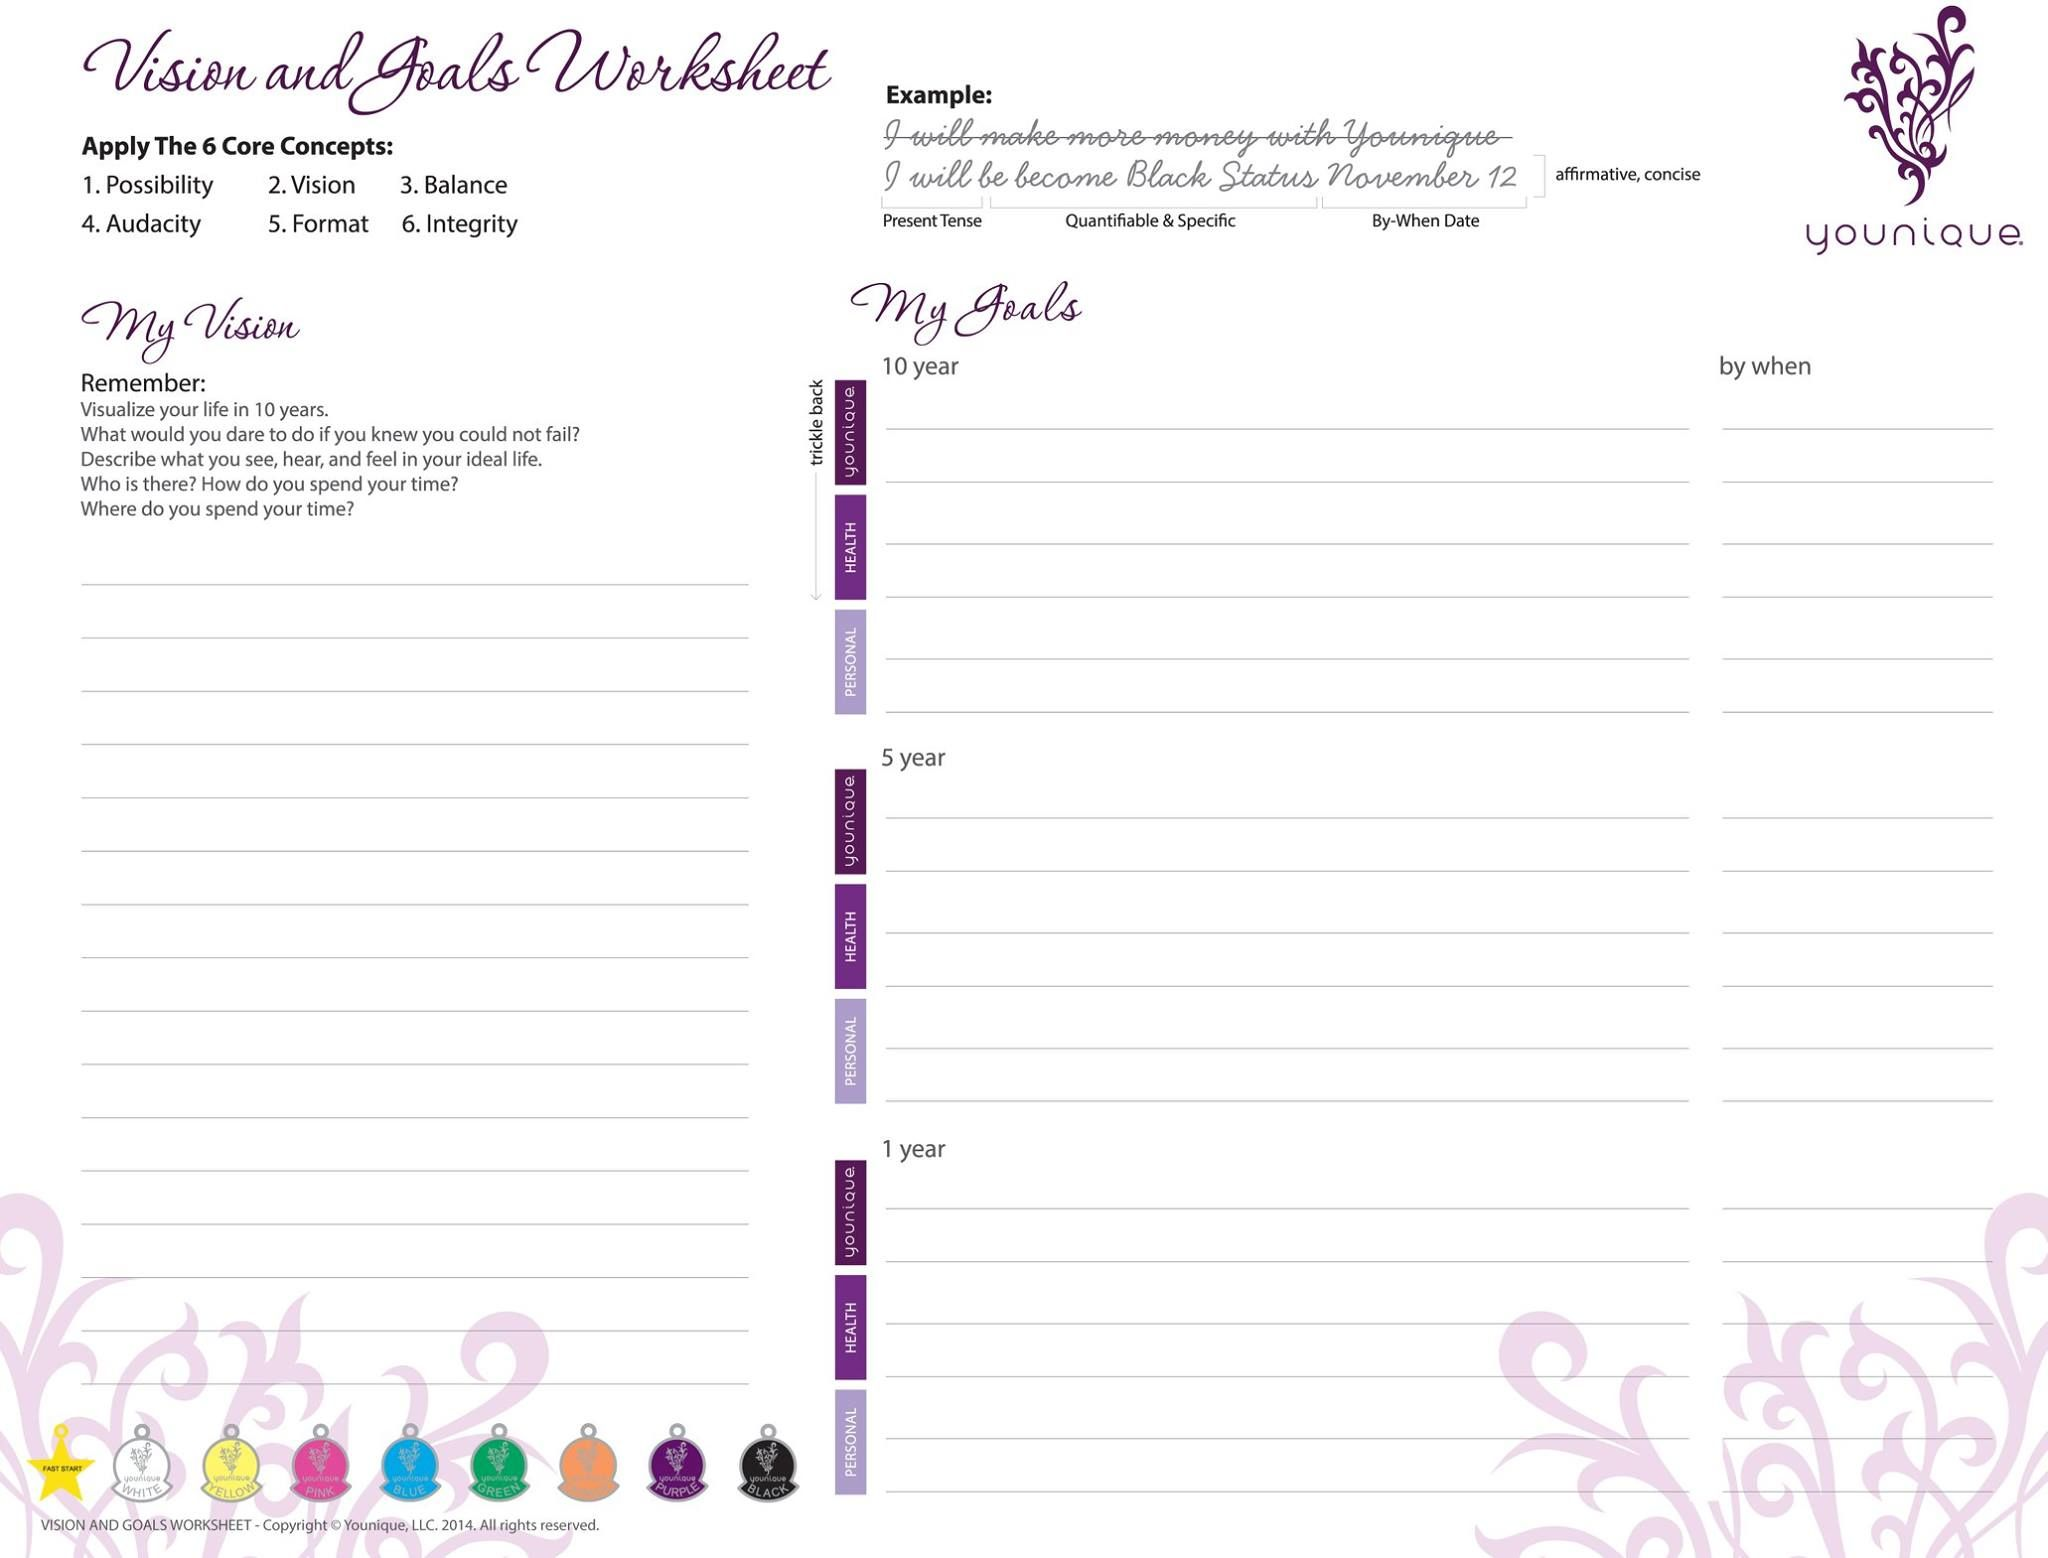 Younique Vision and Goals Work Sheet PDF FILE print out available at on younique presenter for 2 yrs, younique presenter brenda tennal, younique presenter rank, younique presenter logo, younique presenter media, younique presenter levels, younique presenter welcome, younique presenter poster, younique presenter information, younique presenter challenge, younique presenter set, younique presenter kit, younique presenter chart, younique presenter plan,